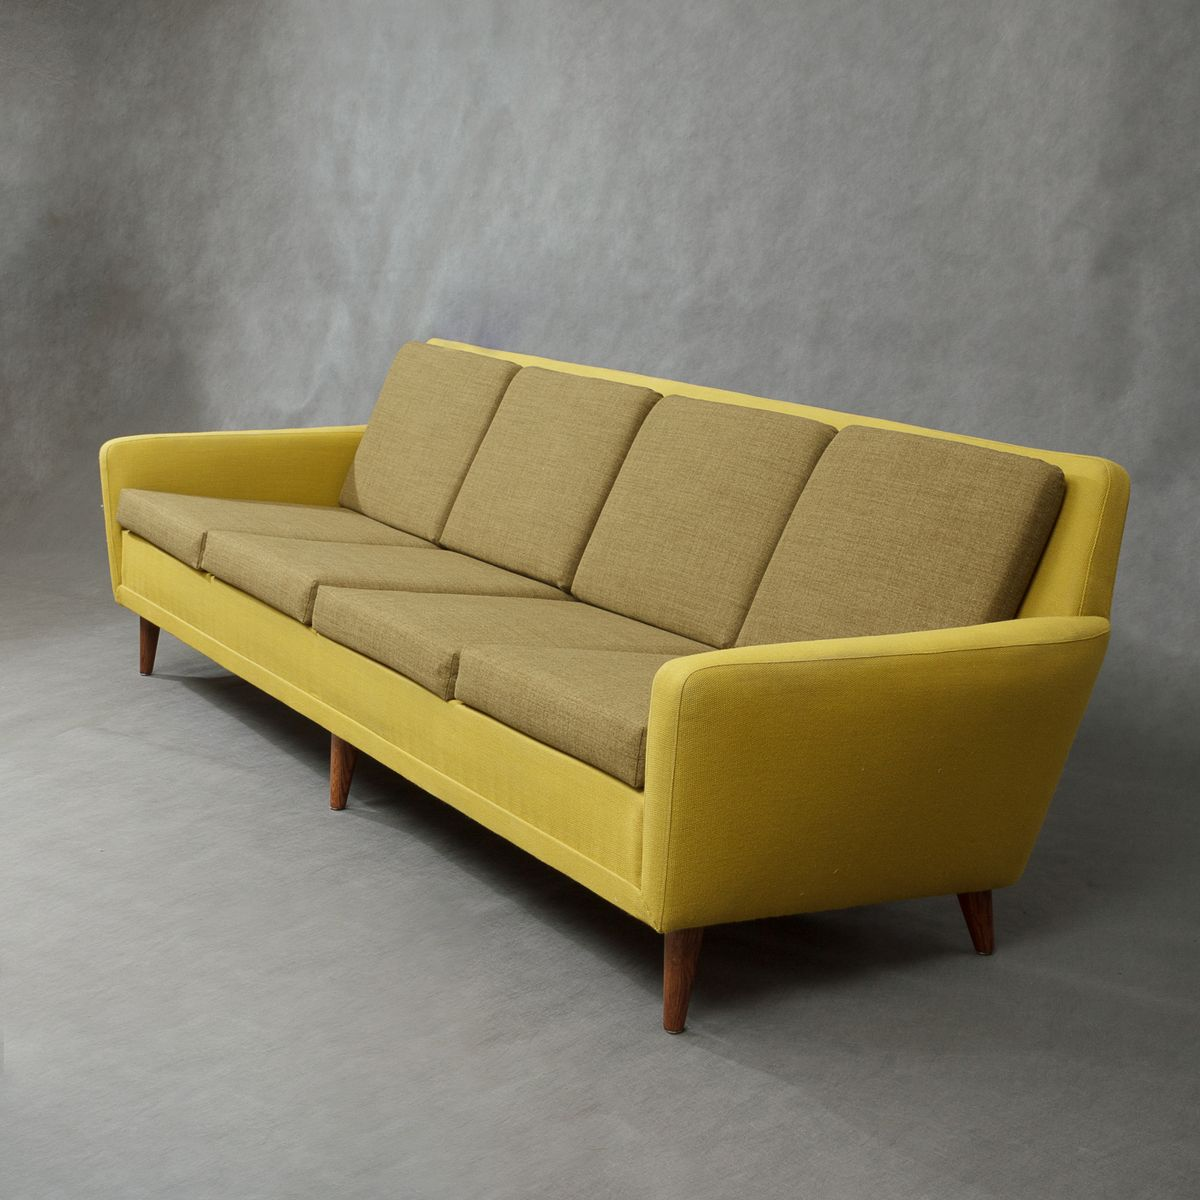 dux sofa by folke ohlsson leather sofas uk quick delivery four seater for 1960s sale